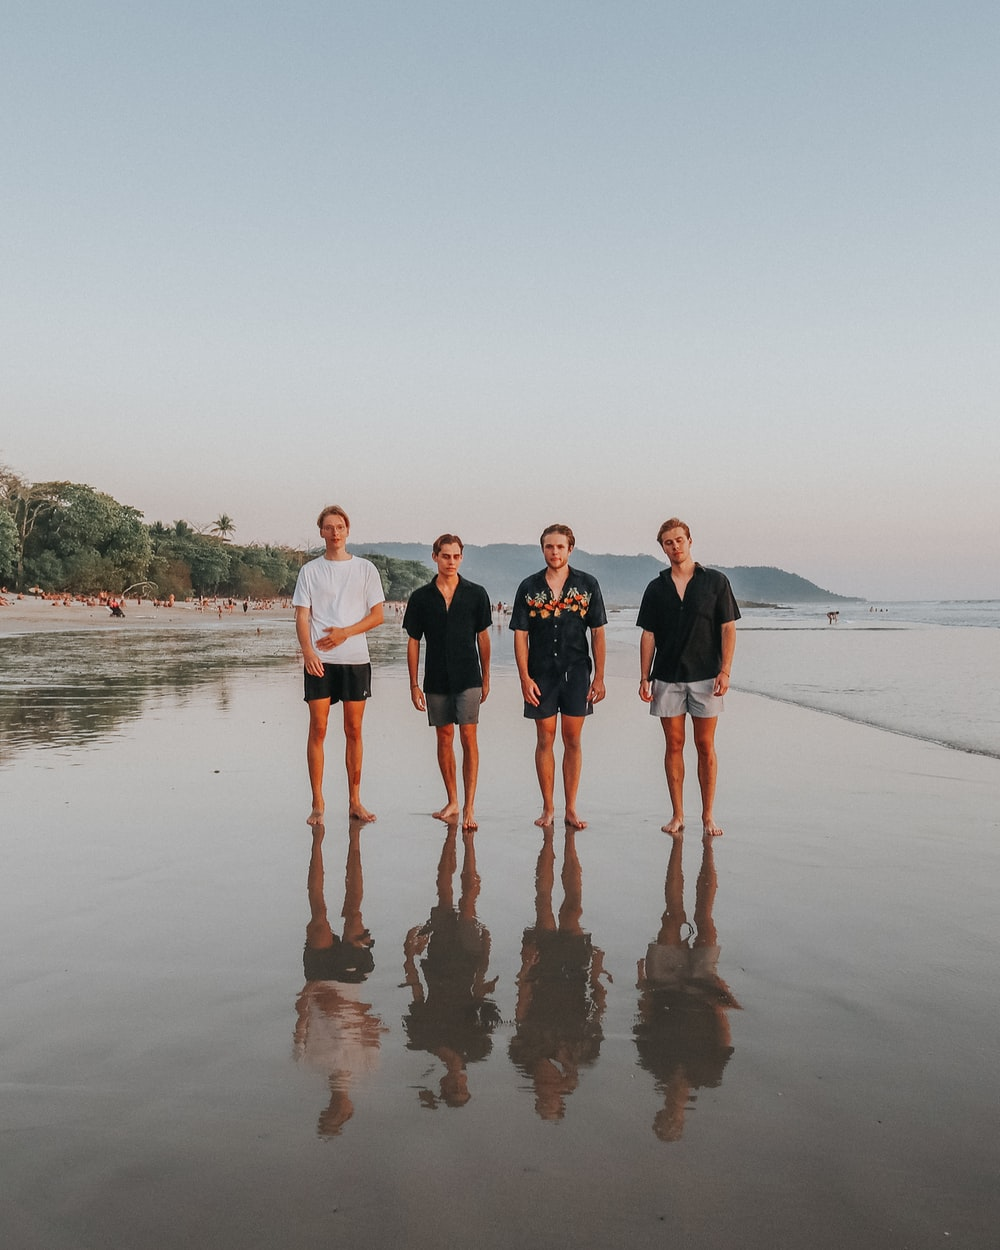 3 women and 2 men standing on beach during daytime